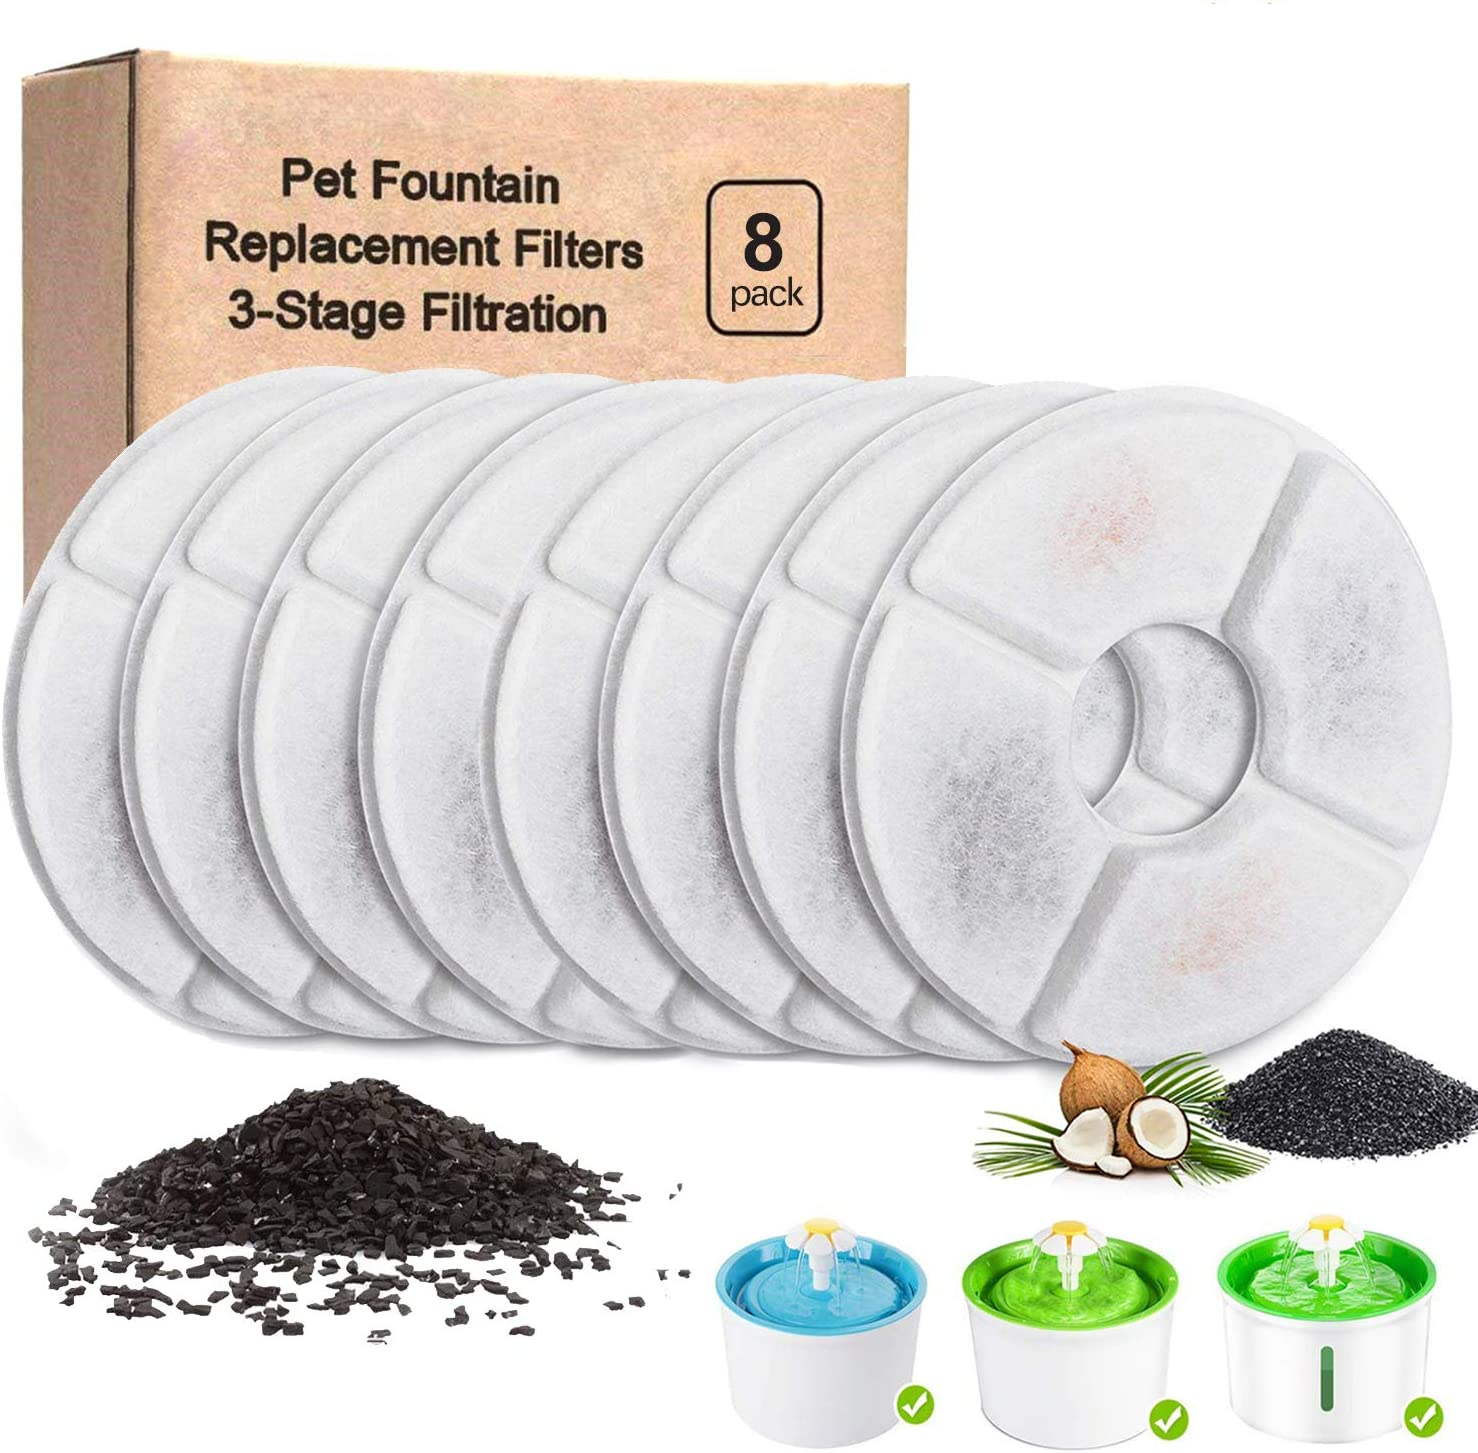 YAYAMOZOM Cat Water Fountain Filters - 8Pcs, Cat Fountain Replacement Filter, Three-Triple Filtration System Replacement Filters for 54oz/1.6L Automatic Cat Fountain Filters Dispenser